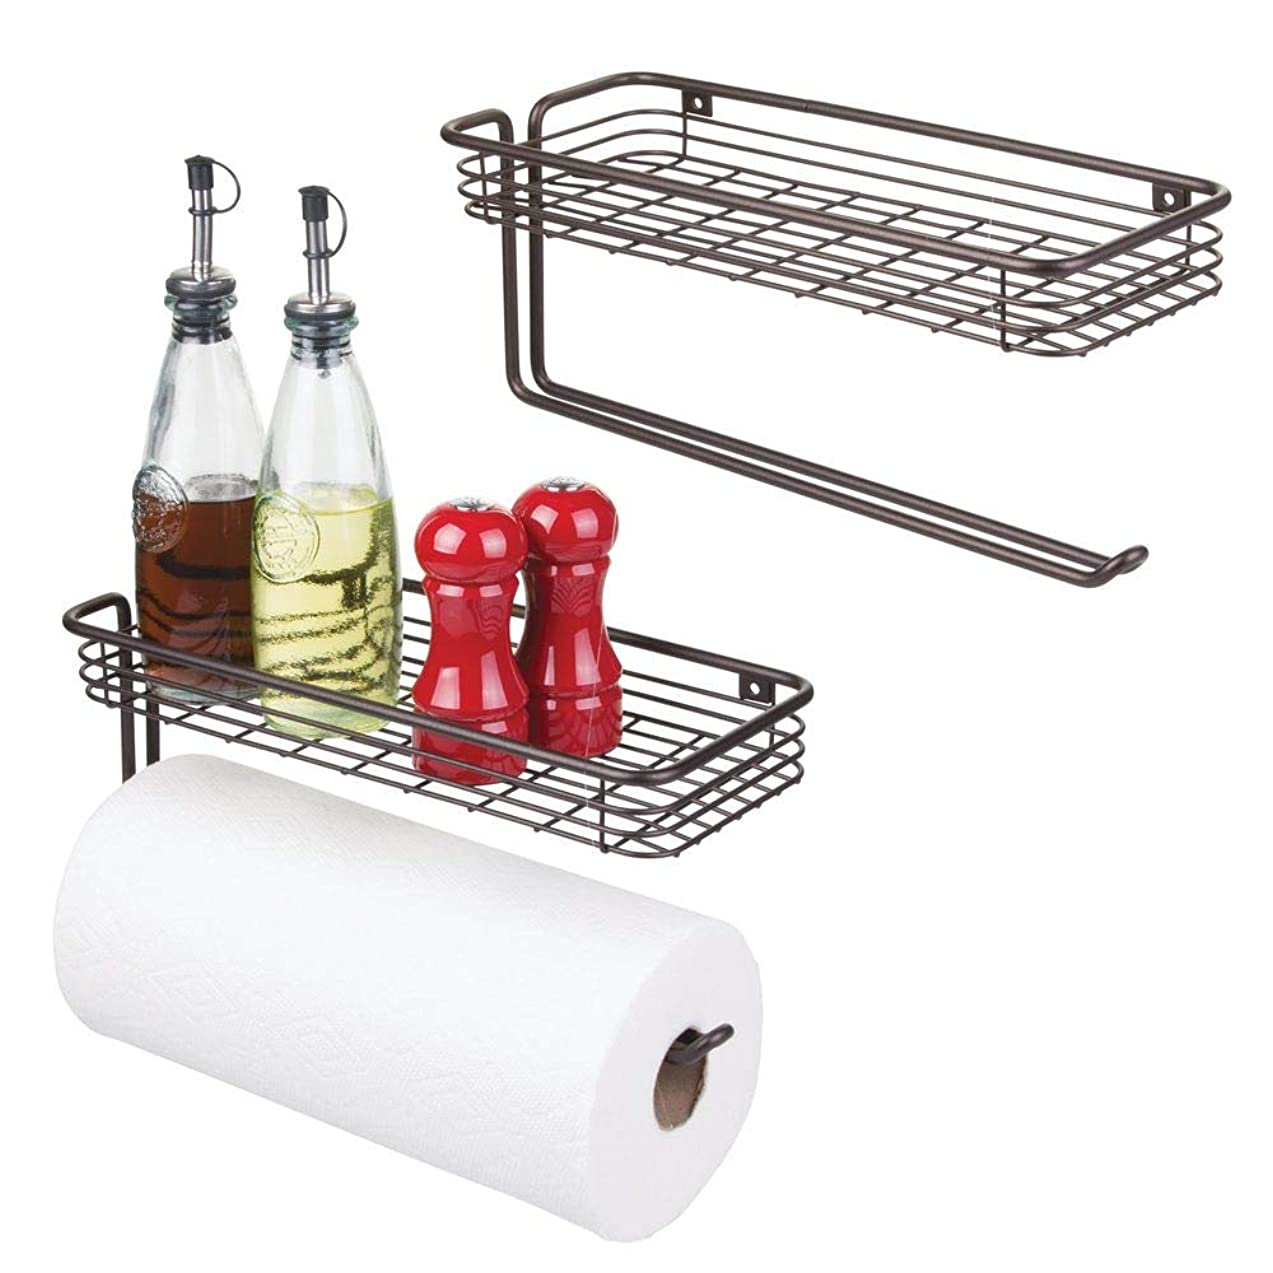 mDesign Paper Towel Holder with Spice Rack and Multi-Purpose Shelf - Wall Mount Storage Organizer for Kitchen, Pantry, Laundry, Garage - Durable Metal Wire Design - 2 Pack - Bronze